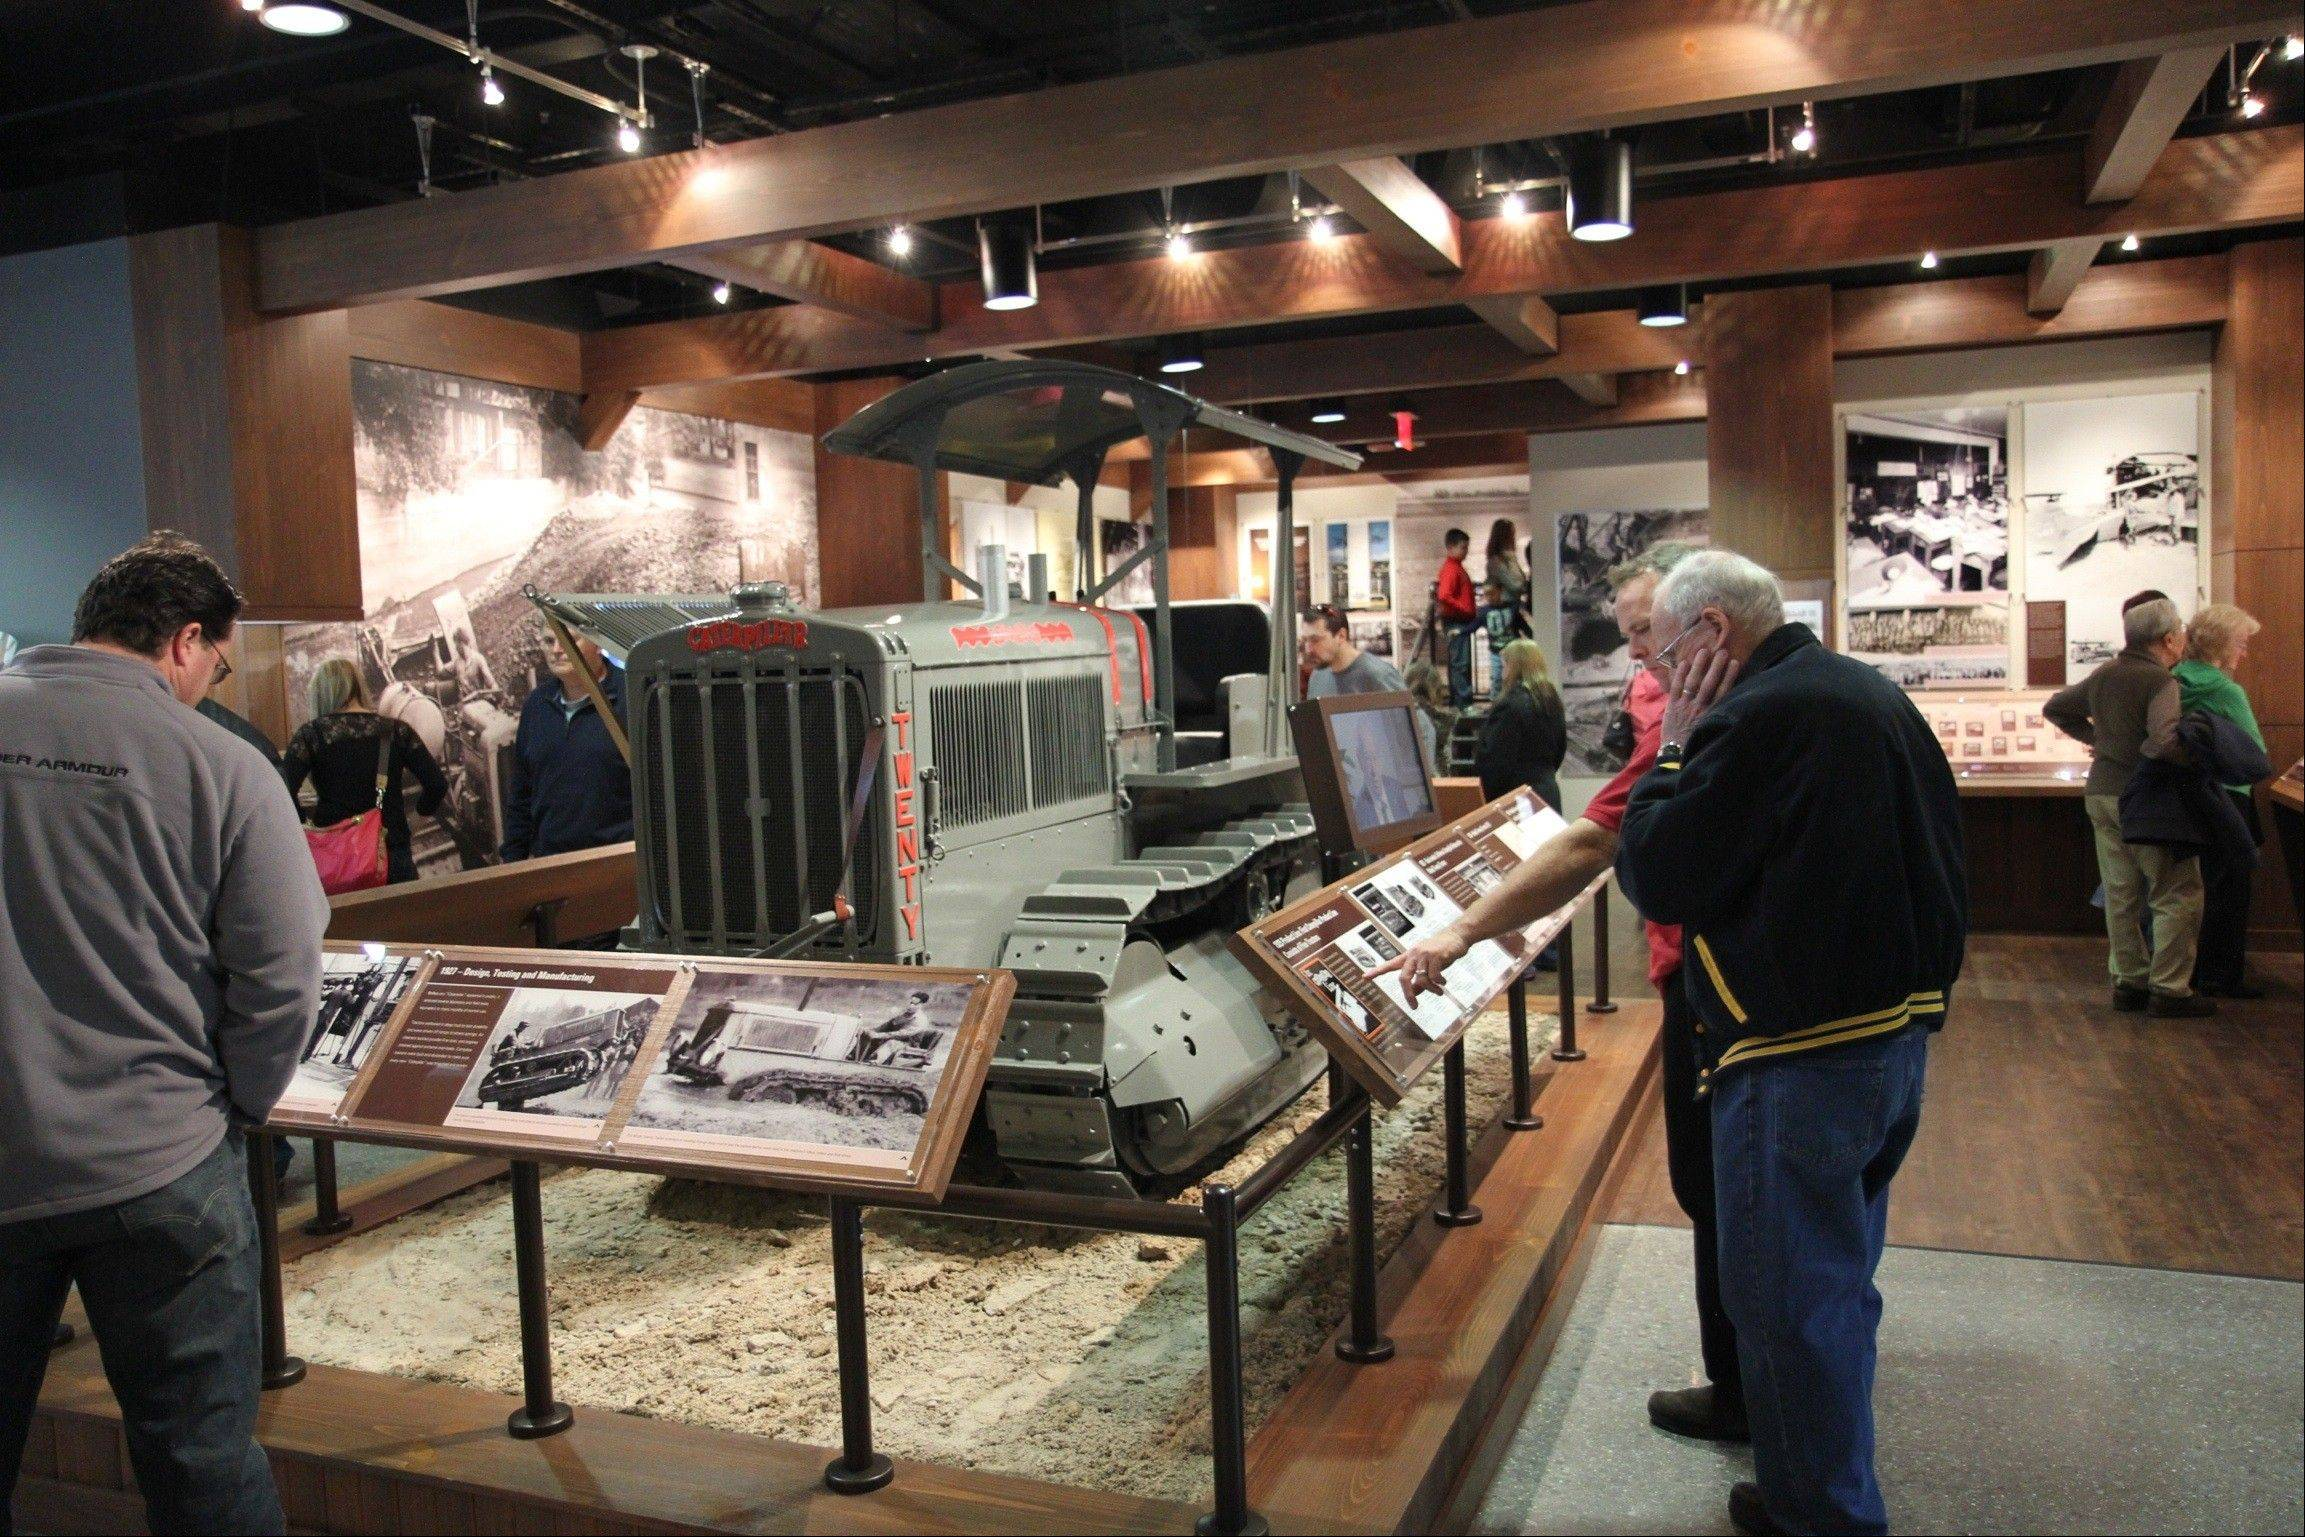 People tour the Caterpillar Visitors Center in Peoria. The center lets visitors climb inside the machines for a closer look while computer simulations provide an opportunity to learn how to manipulate the controls.